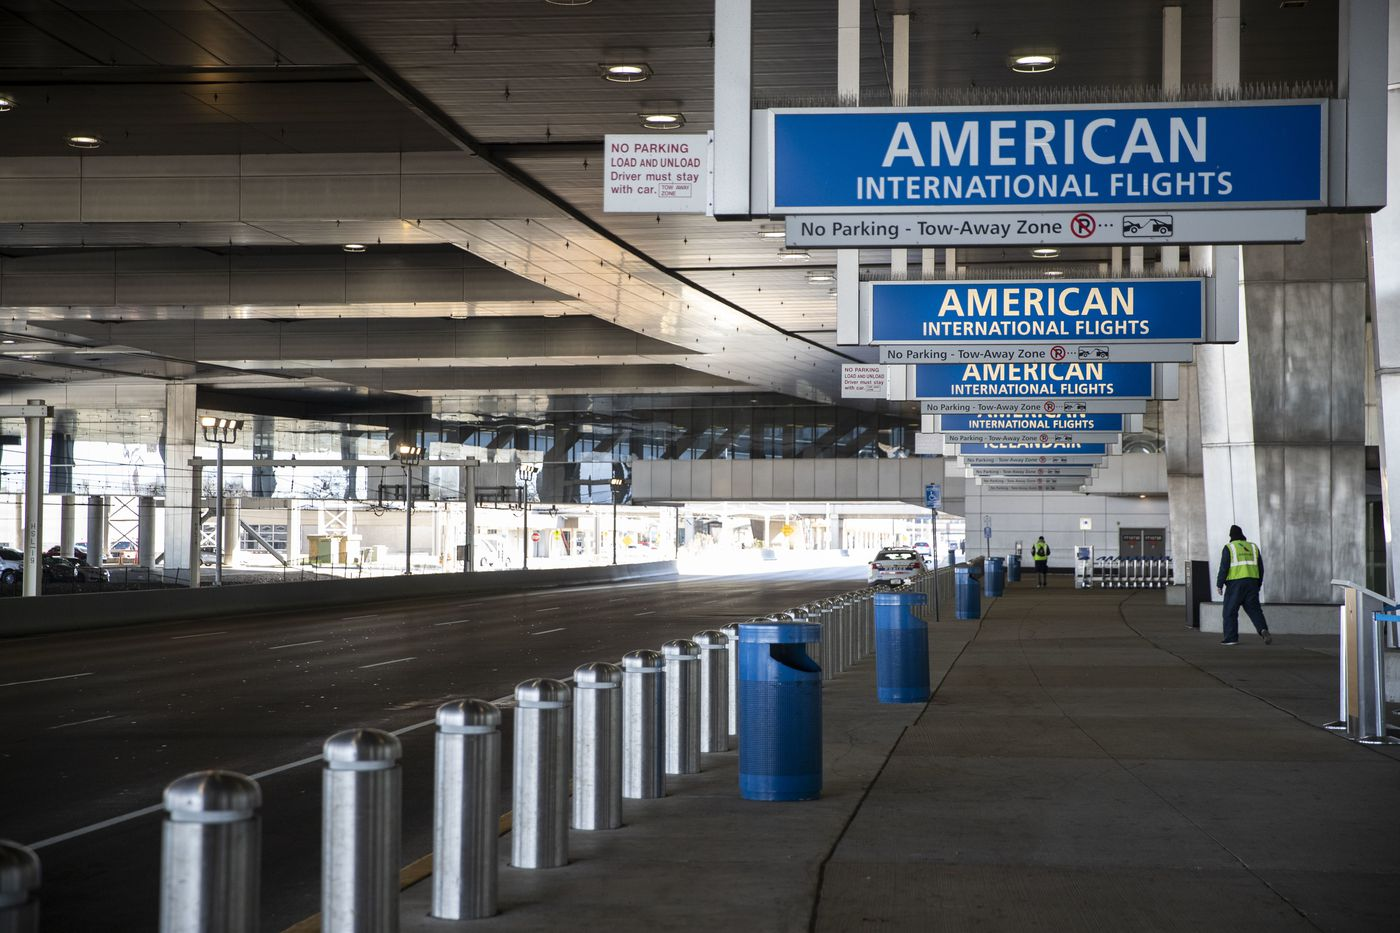 Low traffic outside of the International Check-In at the Philadelphia International Airport in Philadelphia on Monday. Dozens of presumed positive cases of the coronavirus have been reported in Pennsylvania and New Jersey, with the case count escalating daily.